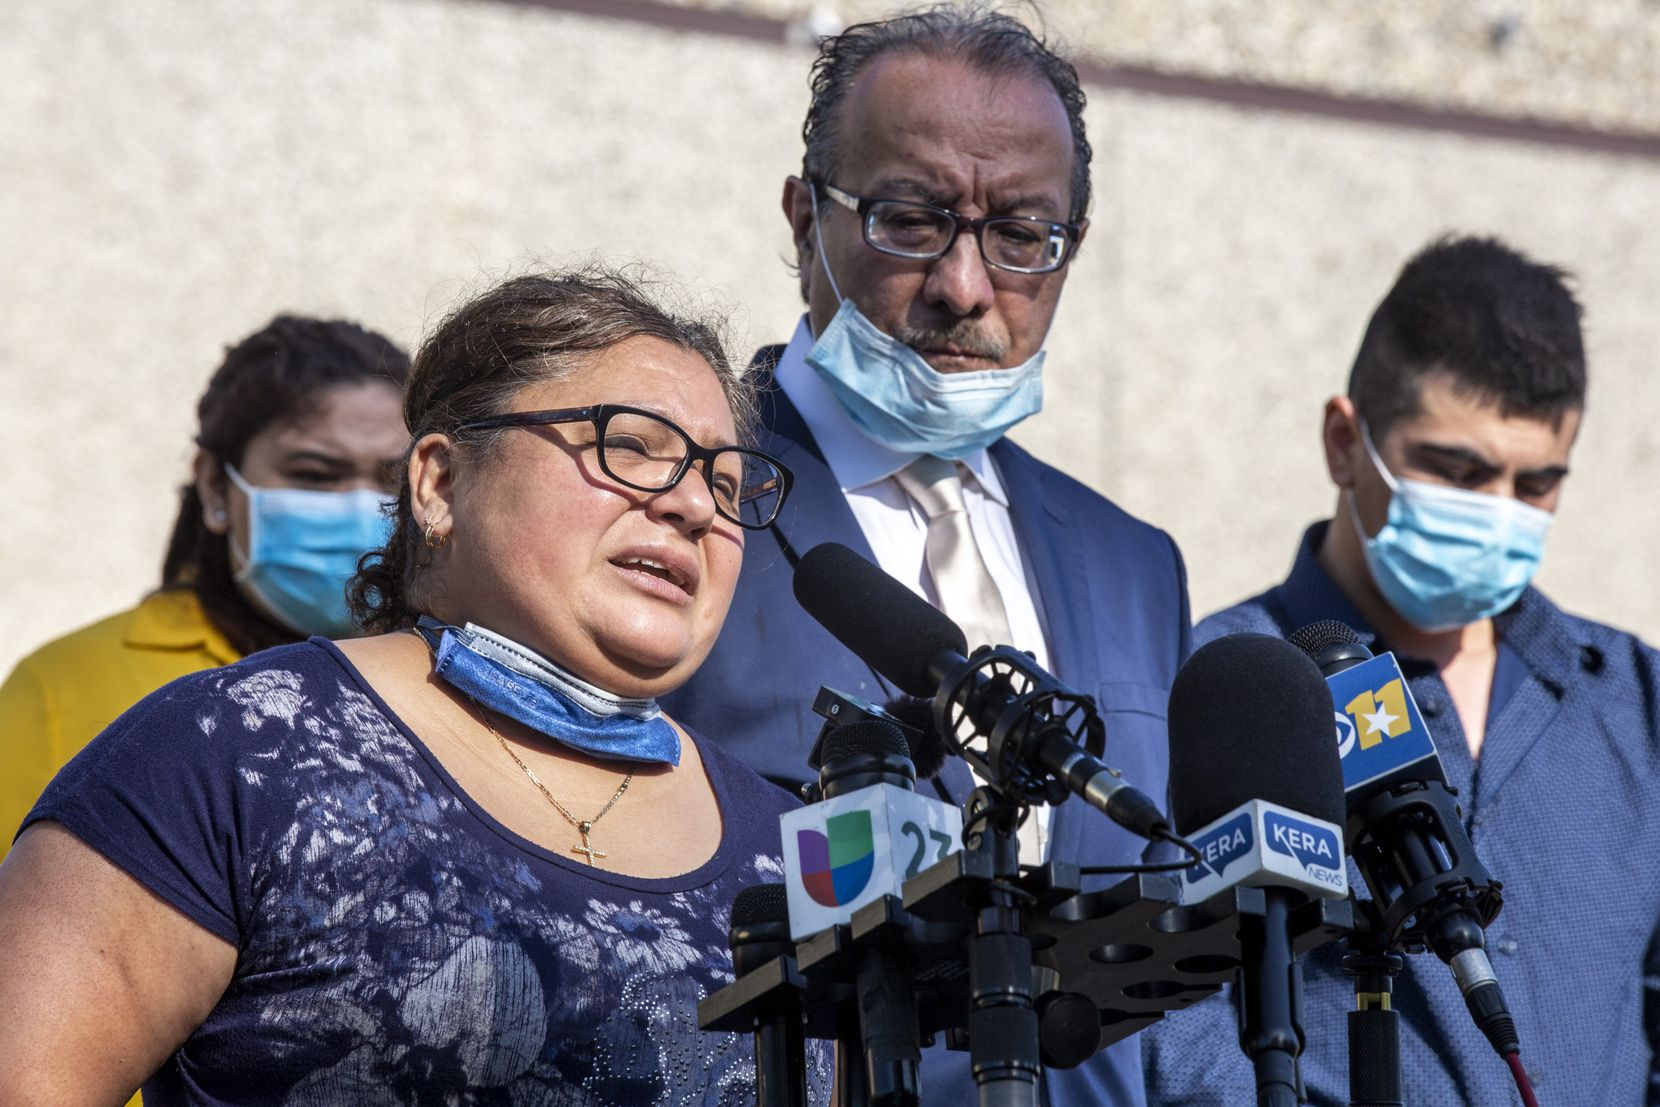 Blanca Parra, the wife of Hugo Dominguez, spoke about his death from COVID-19 at a news conference April 28 at the Quality Sausage Co. in Dallas. Parra has sued the company for wrongful death, alleging that it encouraged workers, including Dominguez, to keep working throughout the pandemic.